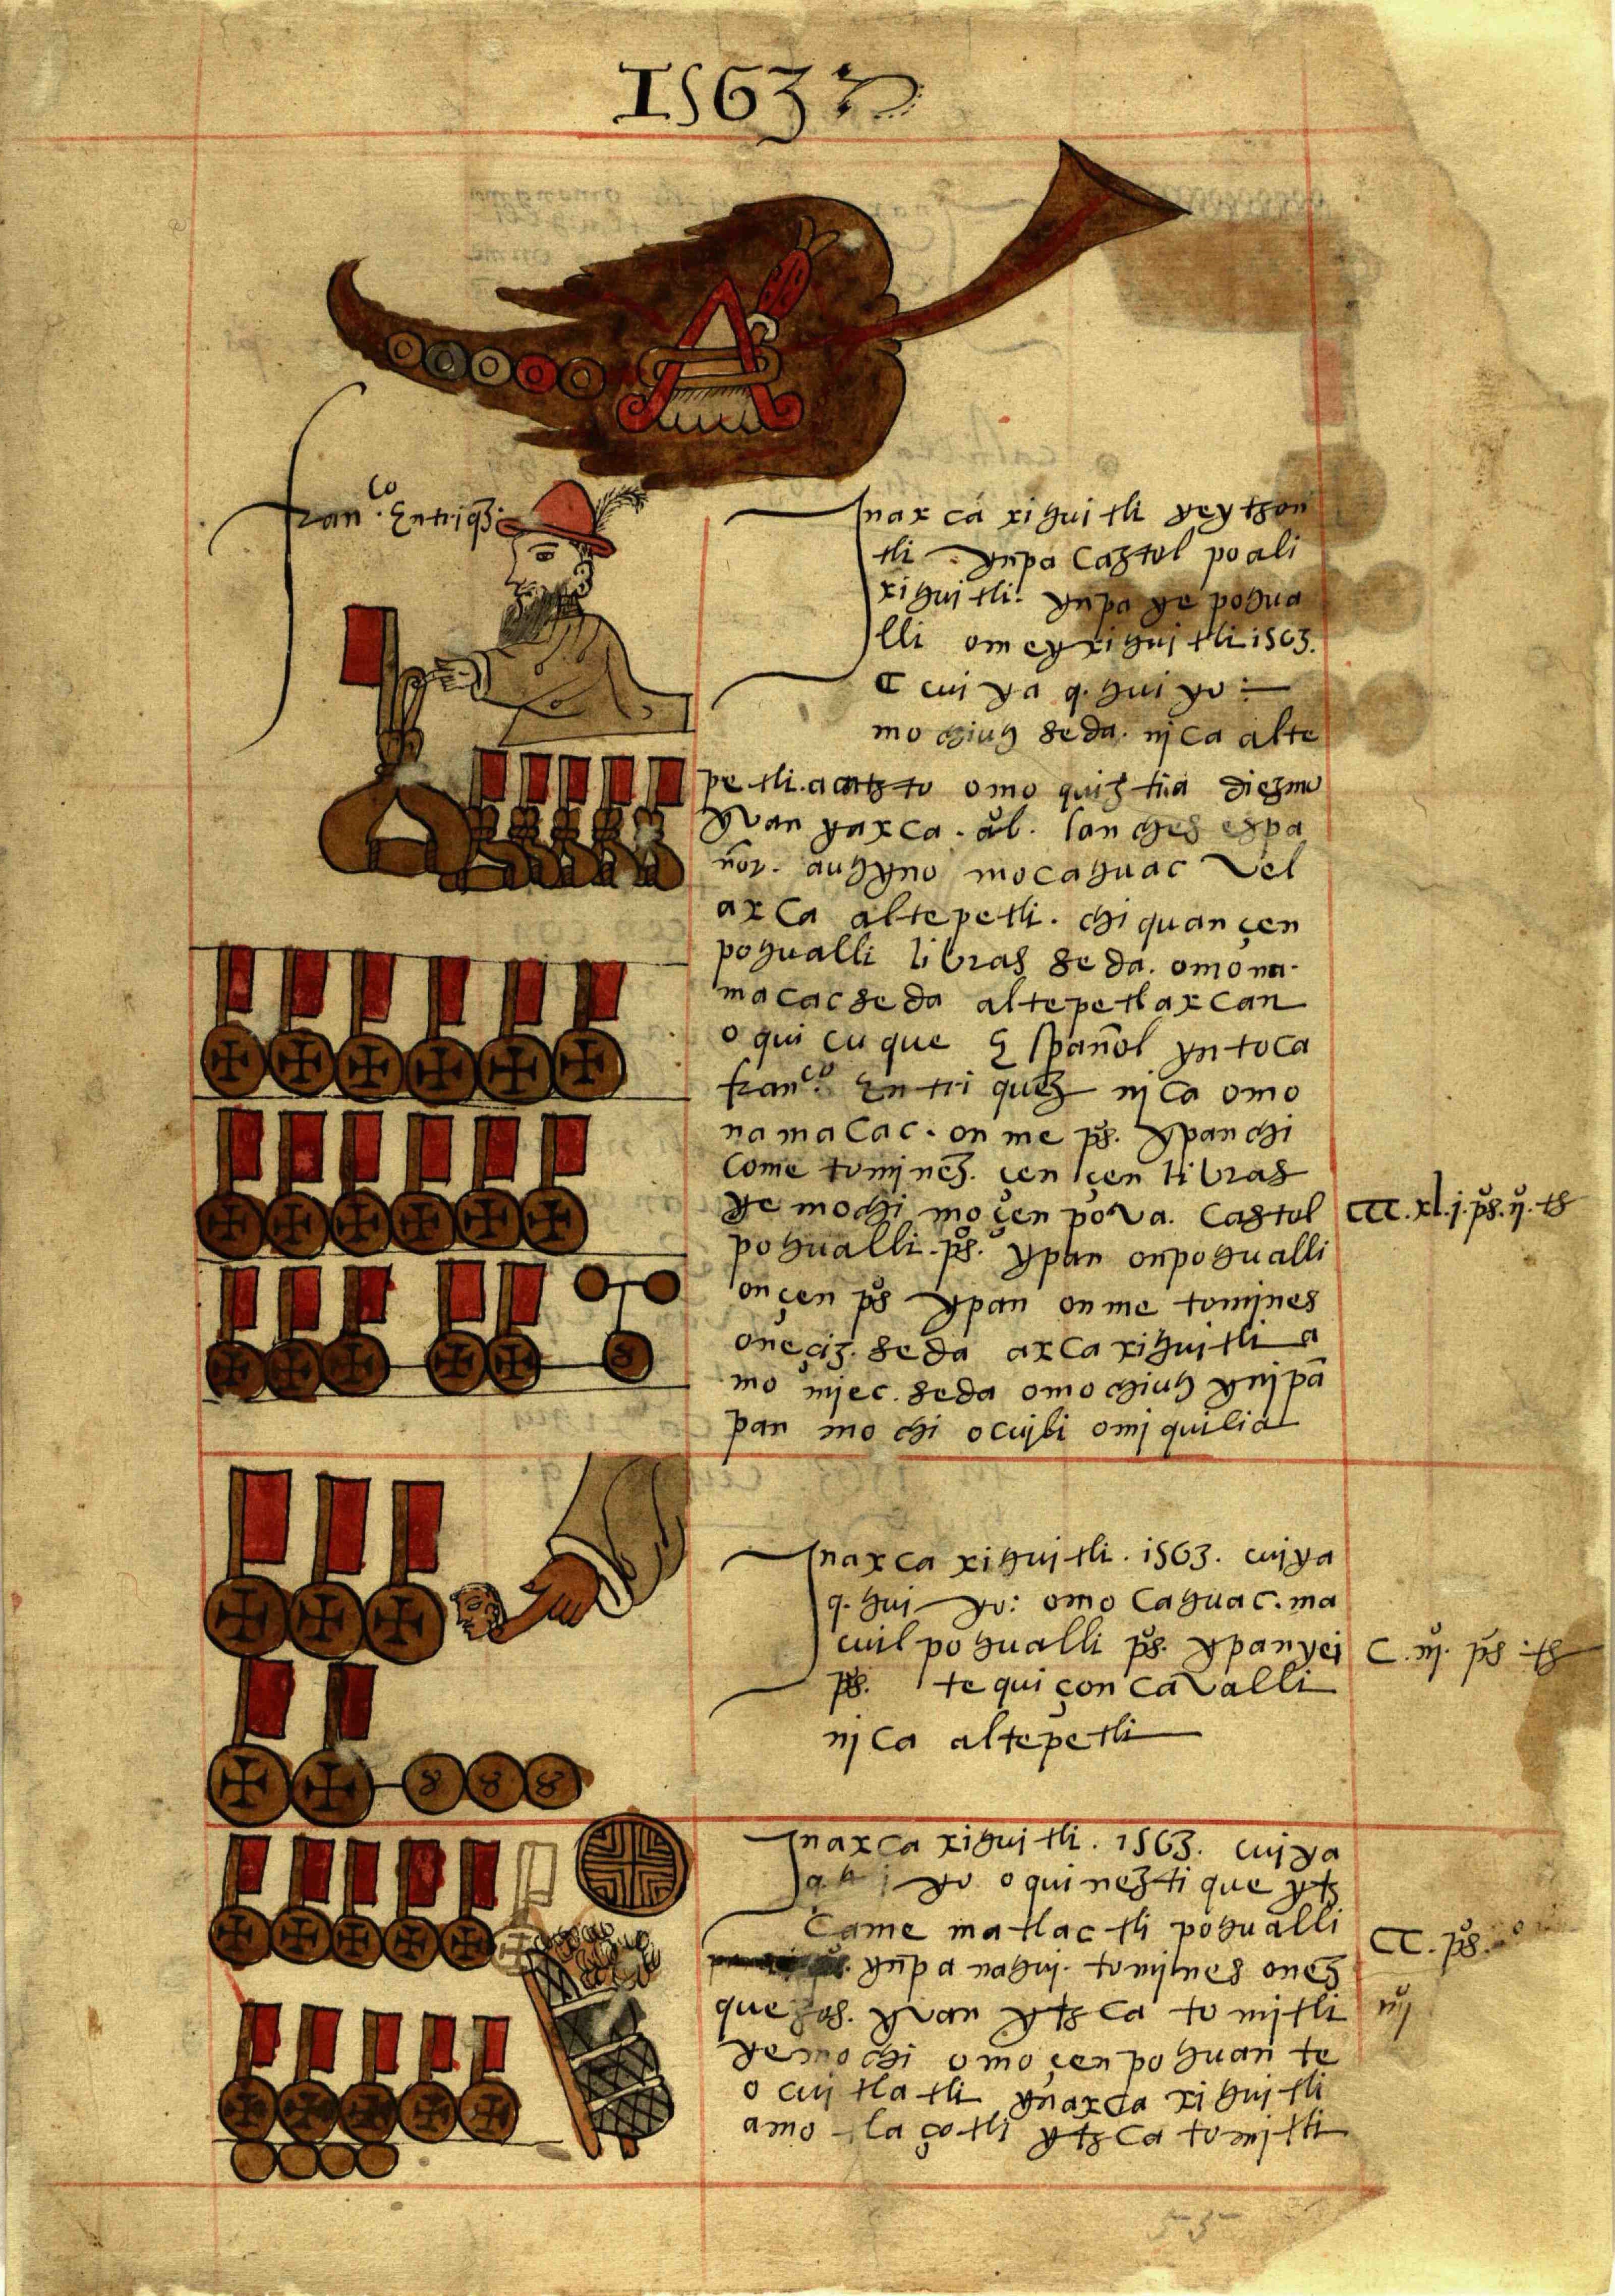 Image from the Codex Sierra Texupan. Courtesy of Biblioteca Histórica José María Lafragua de la Benemérita Universidad Autónoma de Puebla, Mexico.